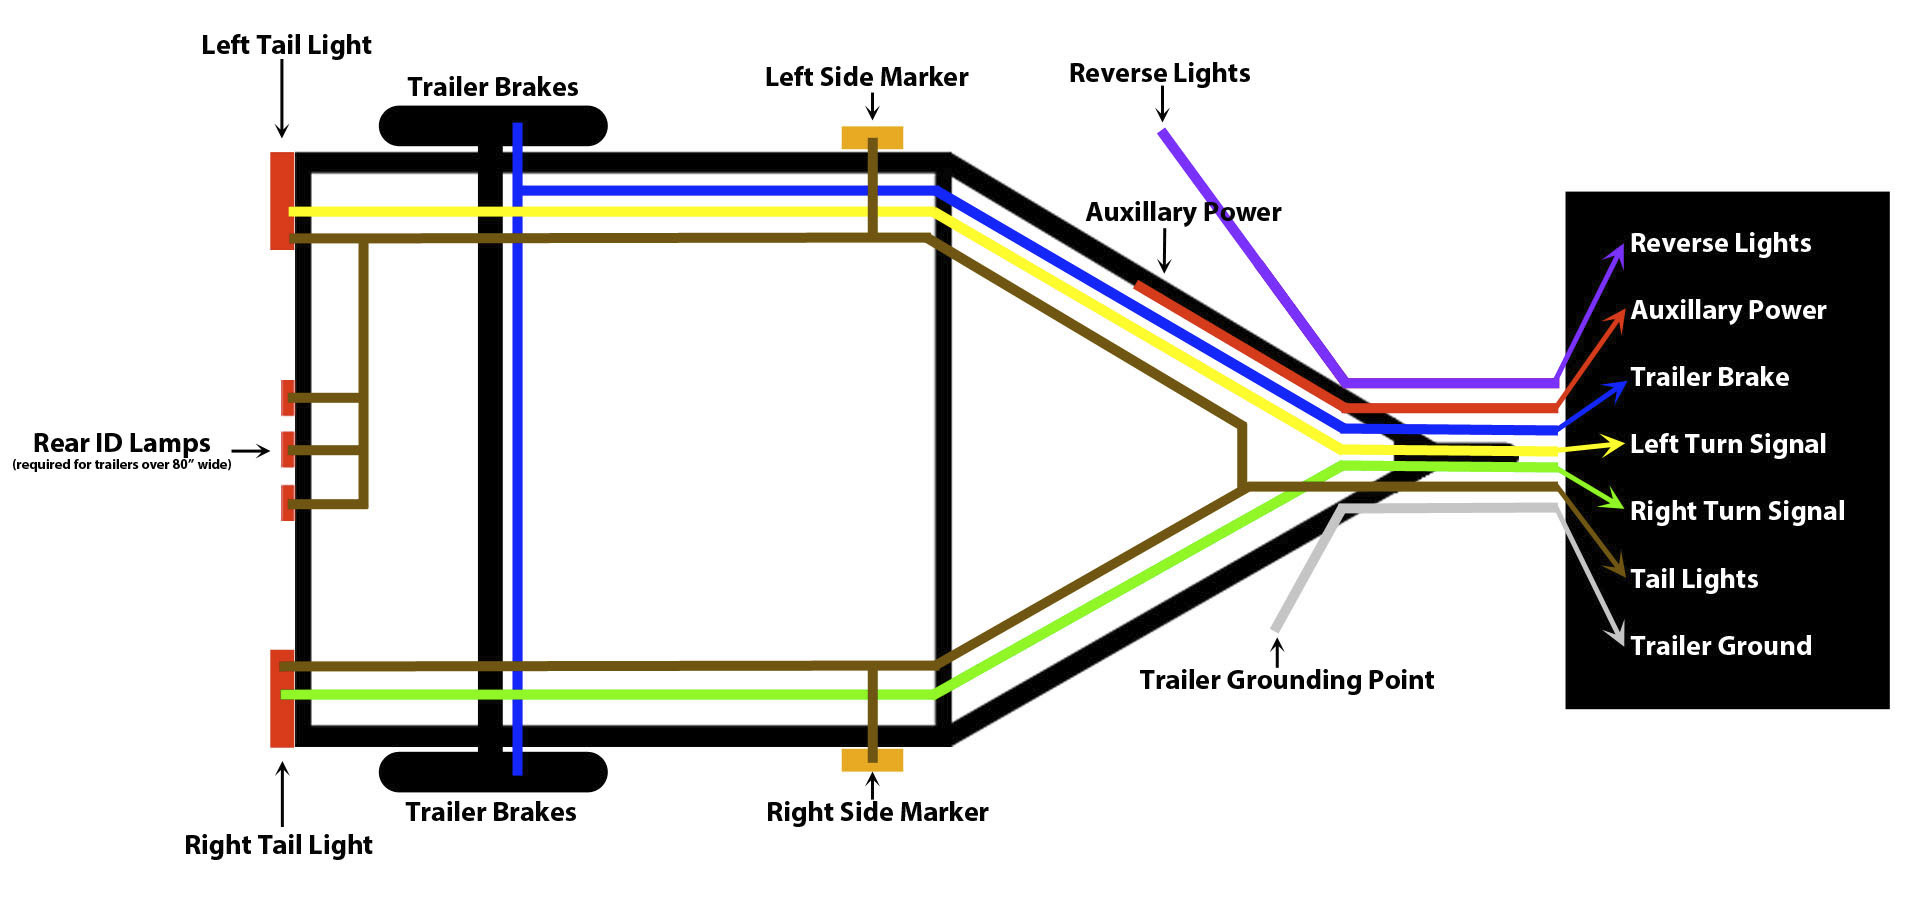 How To Wire Trailer Lights - Trailer Wiring Guide & Videos - Trailer Electrical Plug Wiring Diagram